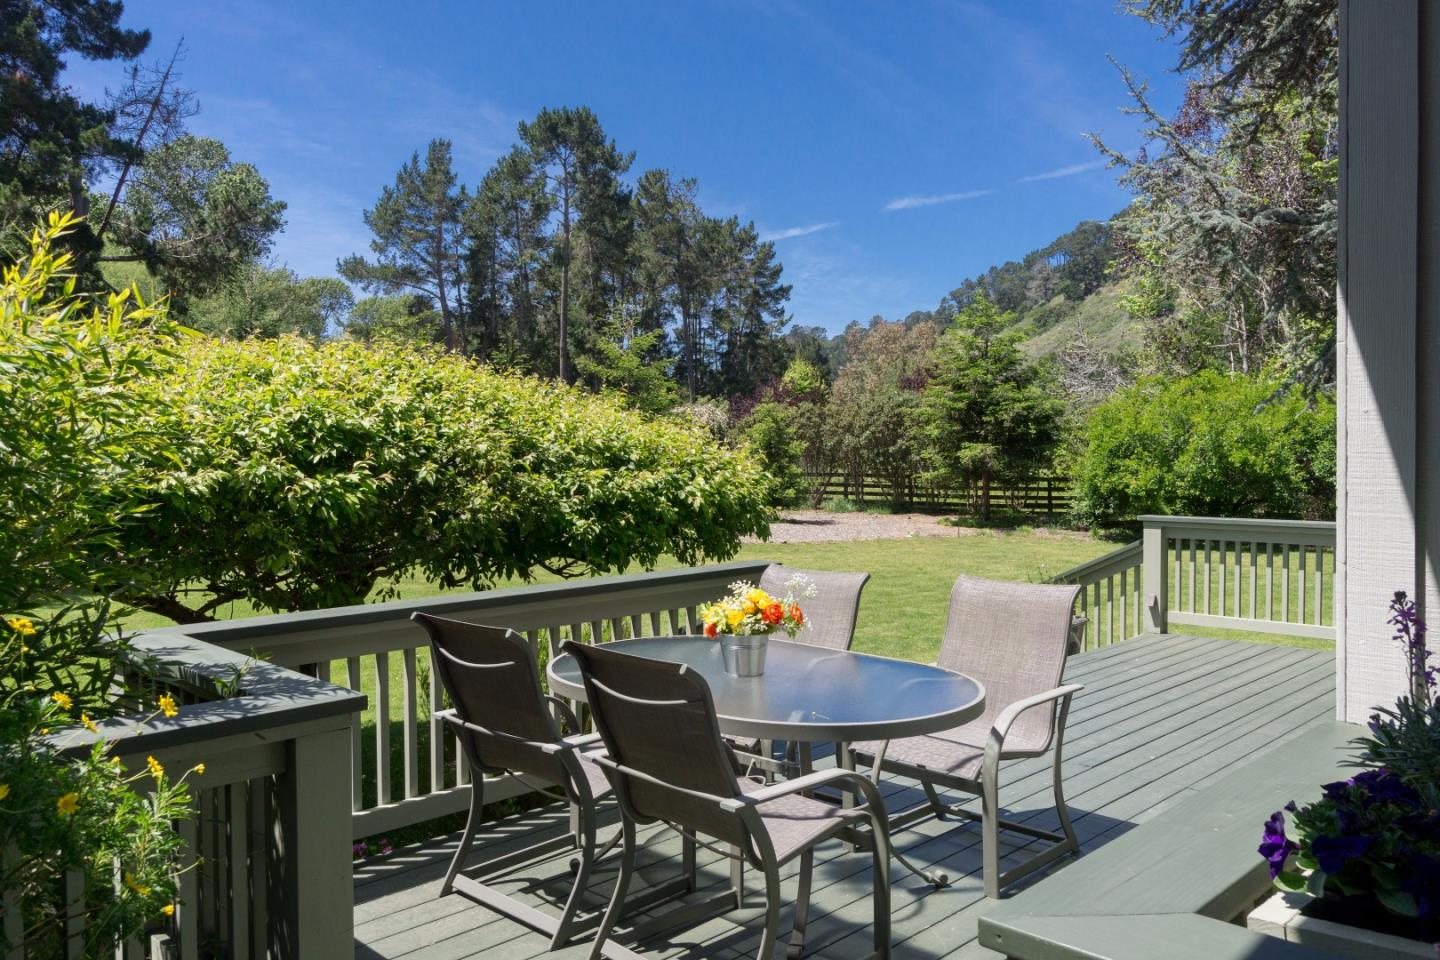 Additional photo for property listing at 26650 Rancho San Carlos Road 26650 Rancho San Carlos Road Carmel, Калифорния 93923 Соединенные Штаты